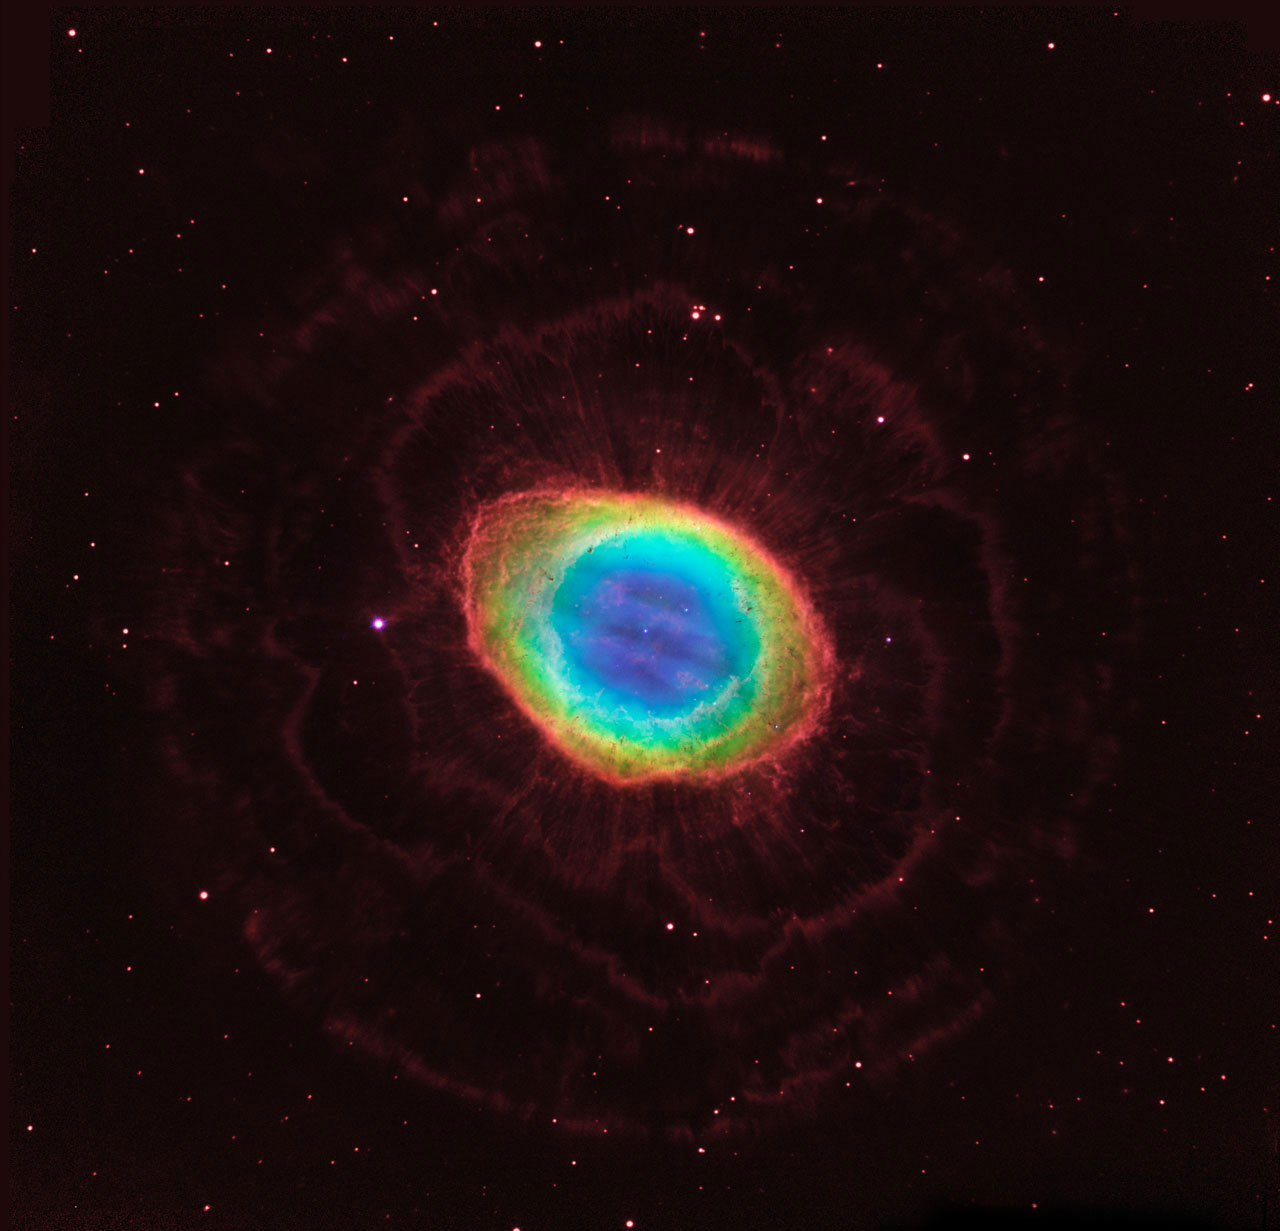 <strong>The Ring Nebula</strong>:                                                                      This image is one of the most detailed observations ever of the Ring Nebula, also known as Messier 57. It reveals intricate structure only hinted at in previous observations, and has allowed scientists to construct a model of the nebula in 3D — showing the true shape of this striking object.                                                                      <i>Image released on May 23, 2013</i>